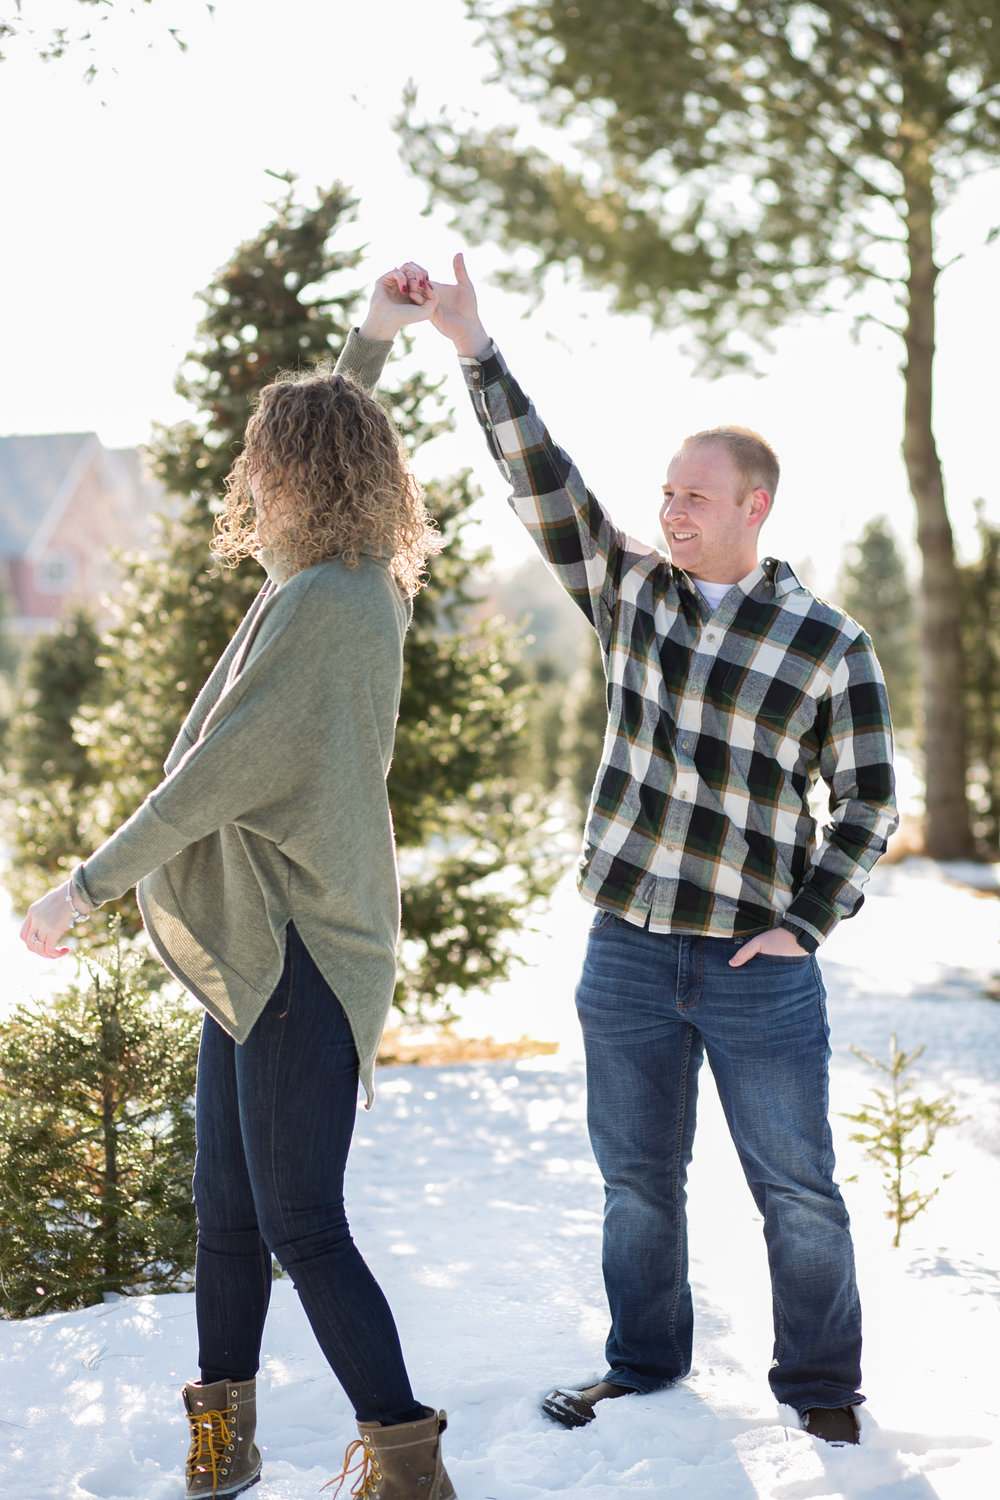 Winter Engagement Photographs in Minnesota by Chelsea Bolling Photography